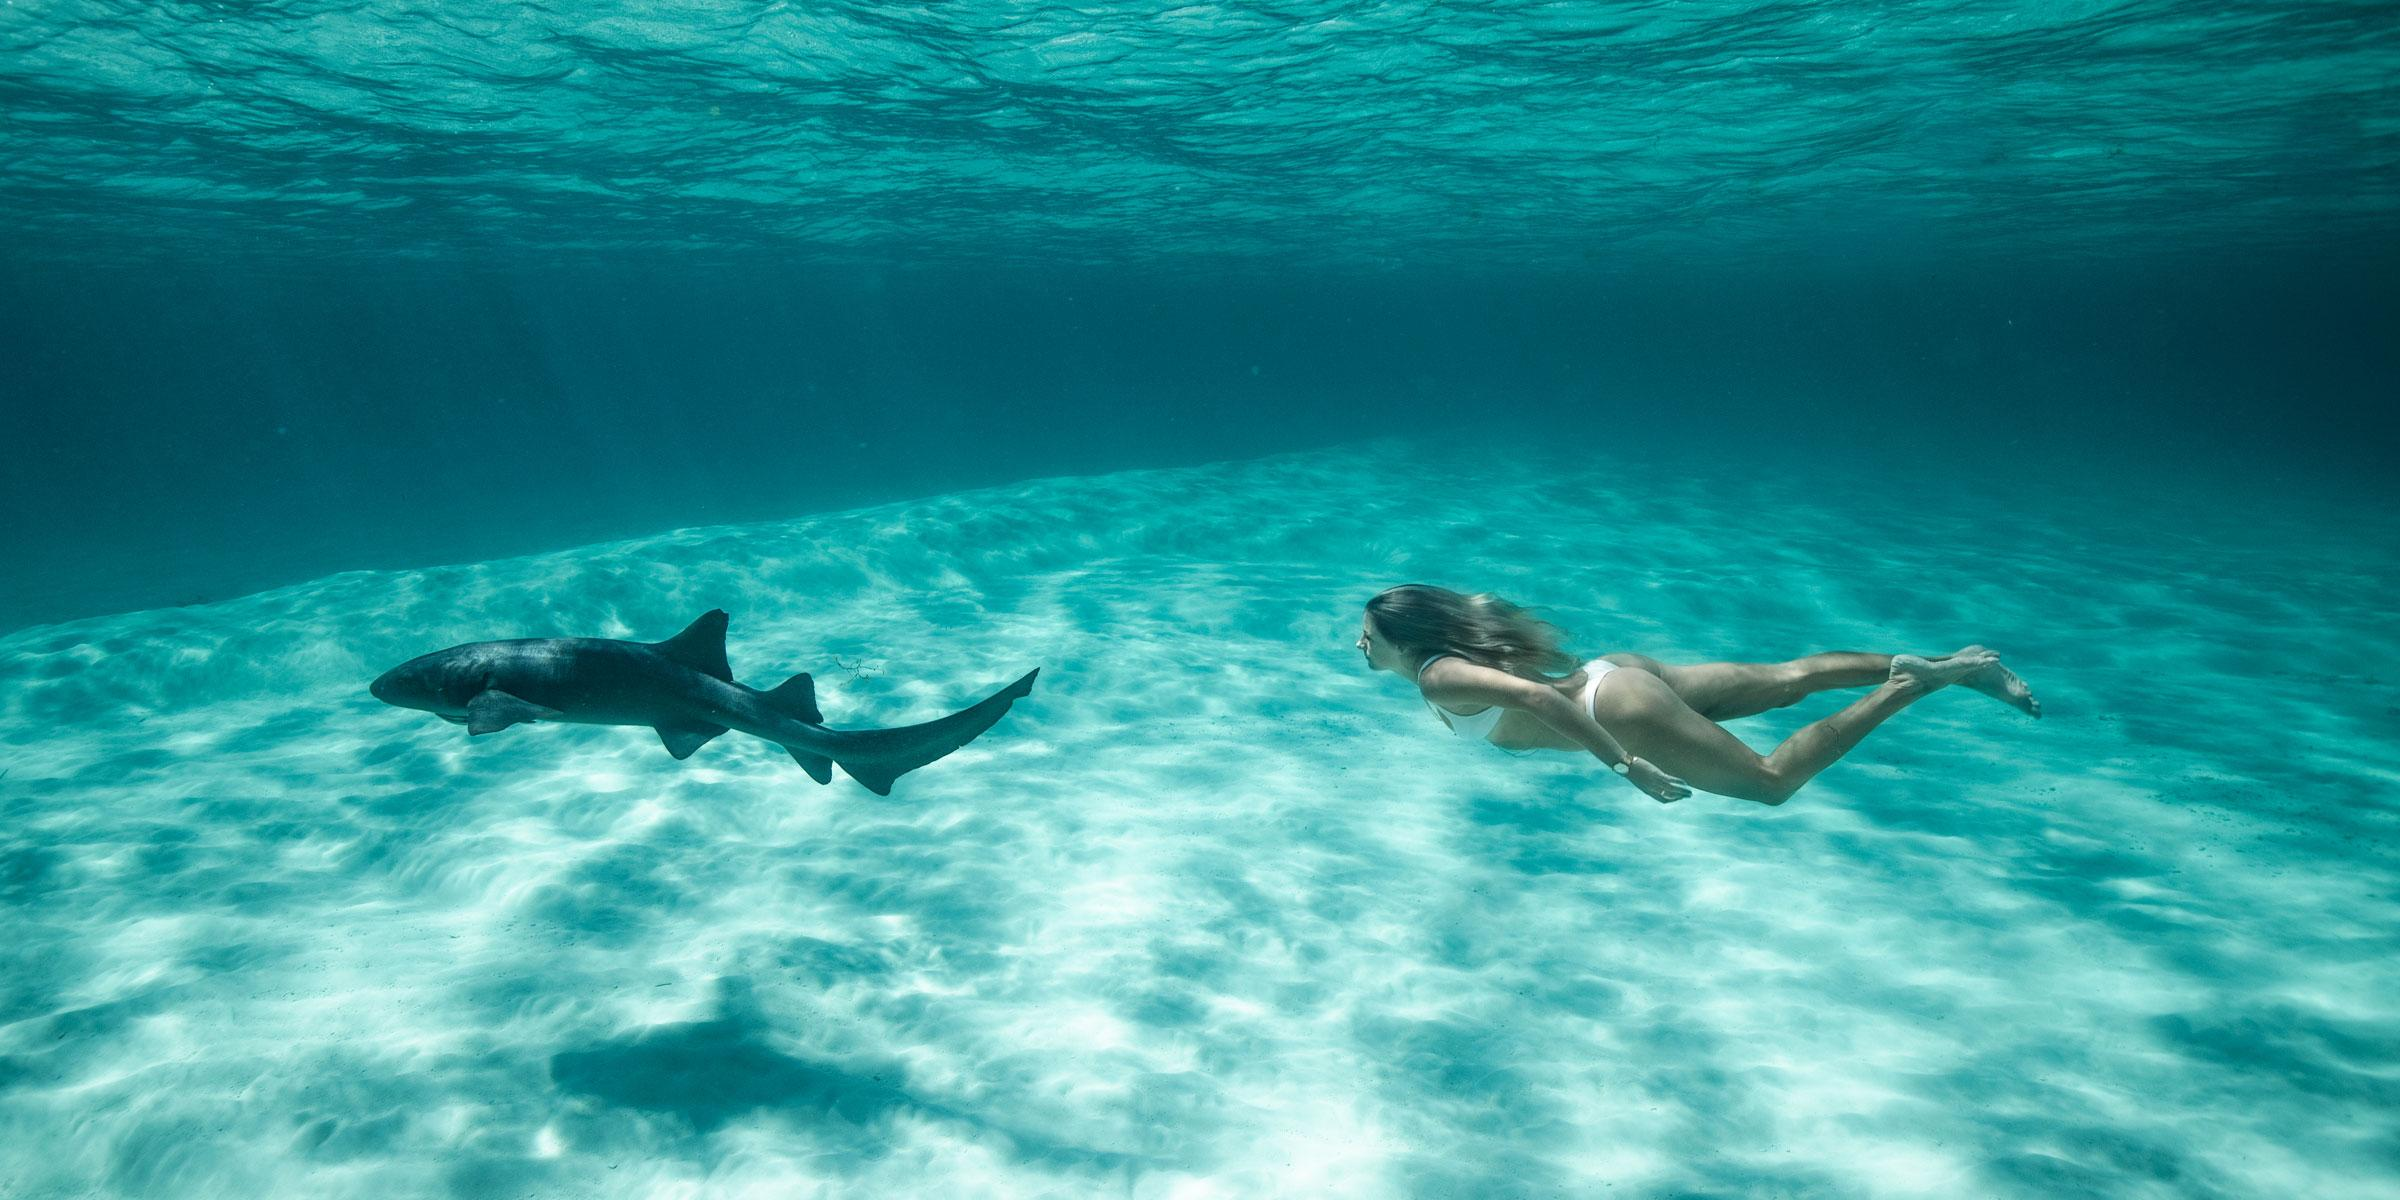 woman_swimming_with_nurse_shark_exumas_bahamas_2400x1200_web.jpg?t=1KLfk7&itok=z_Juti56